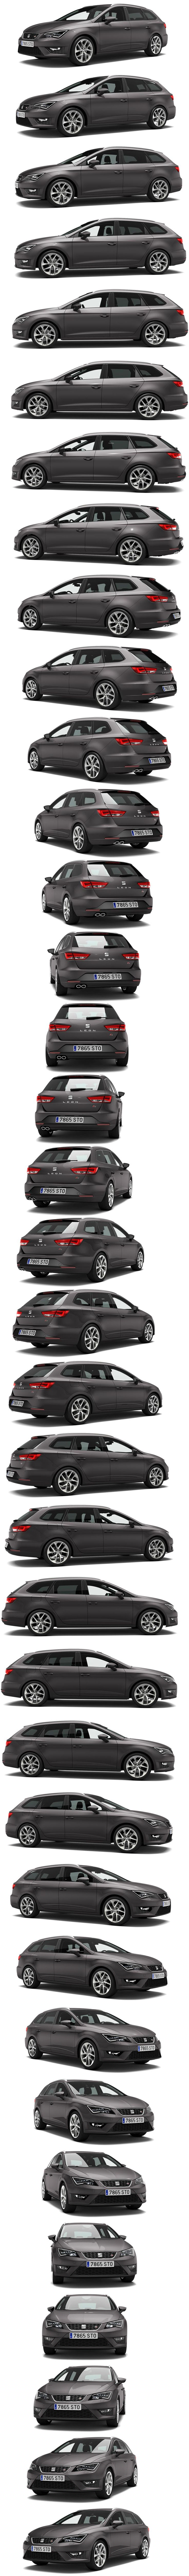 NEW SEAT LEON ST could be the one I'm buying in a couple of years